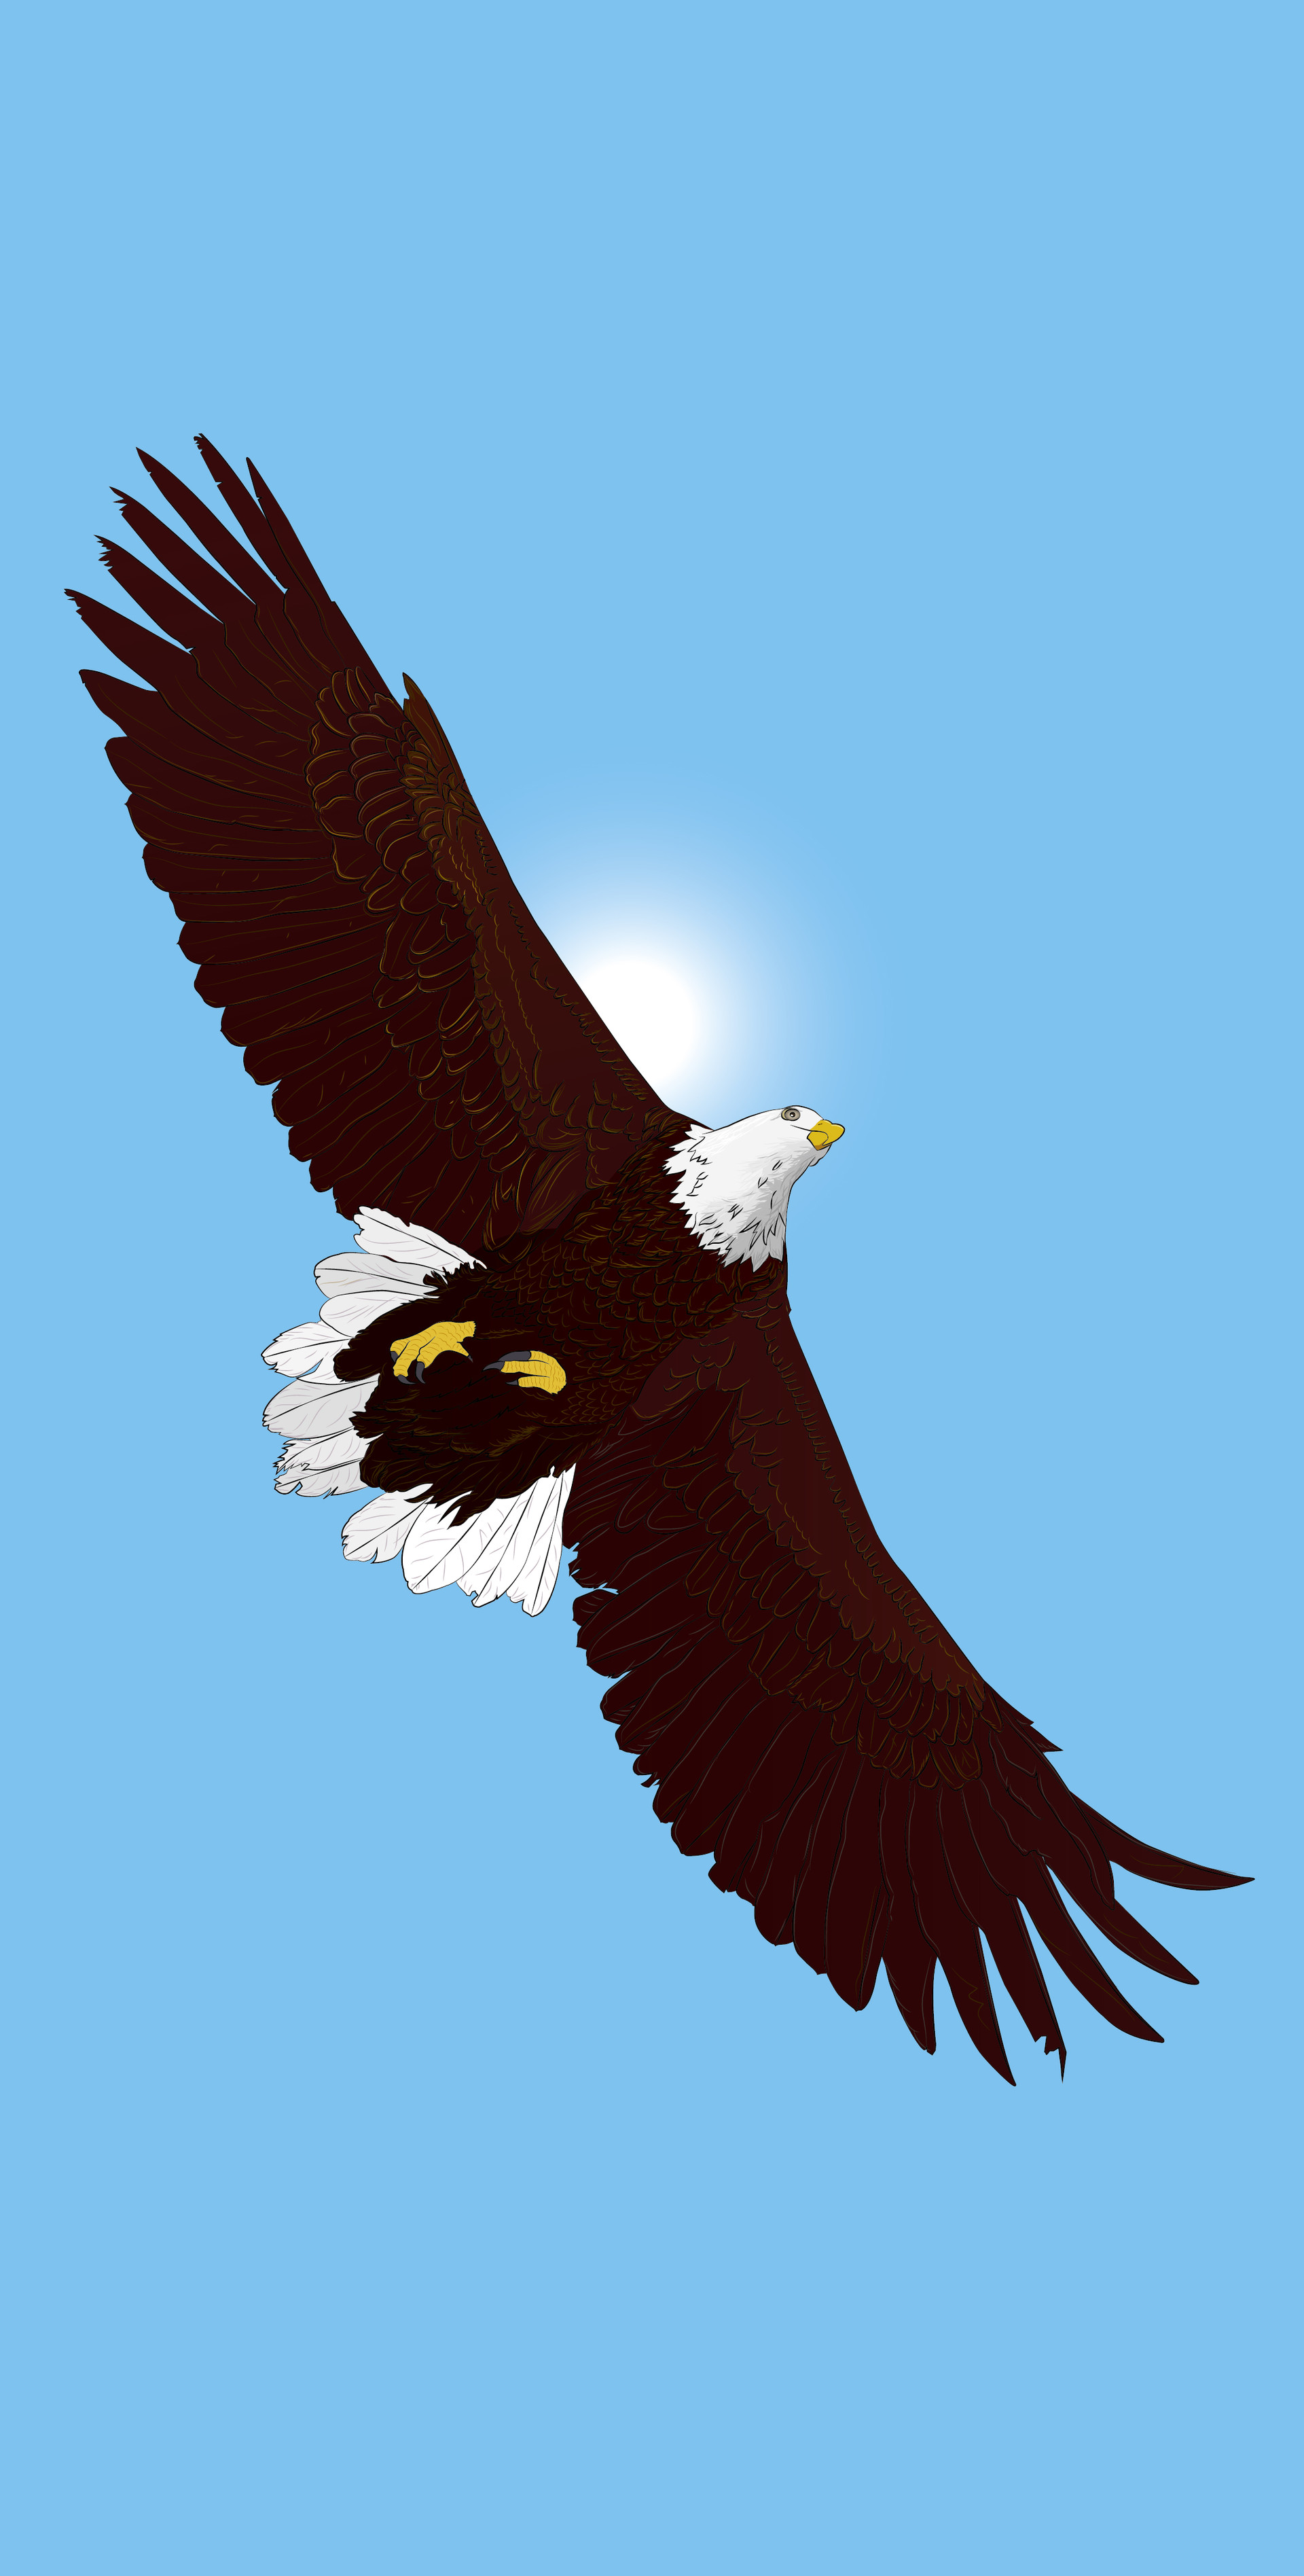 Rajesh sawant eagle color 2 01